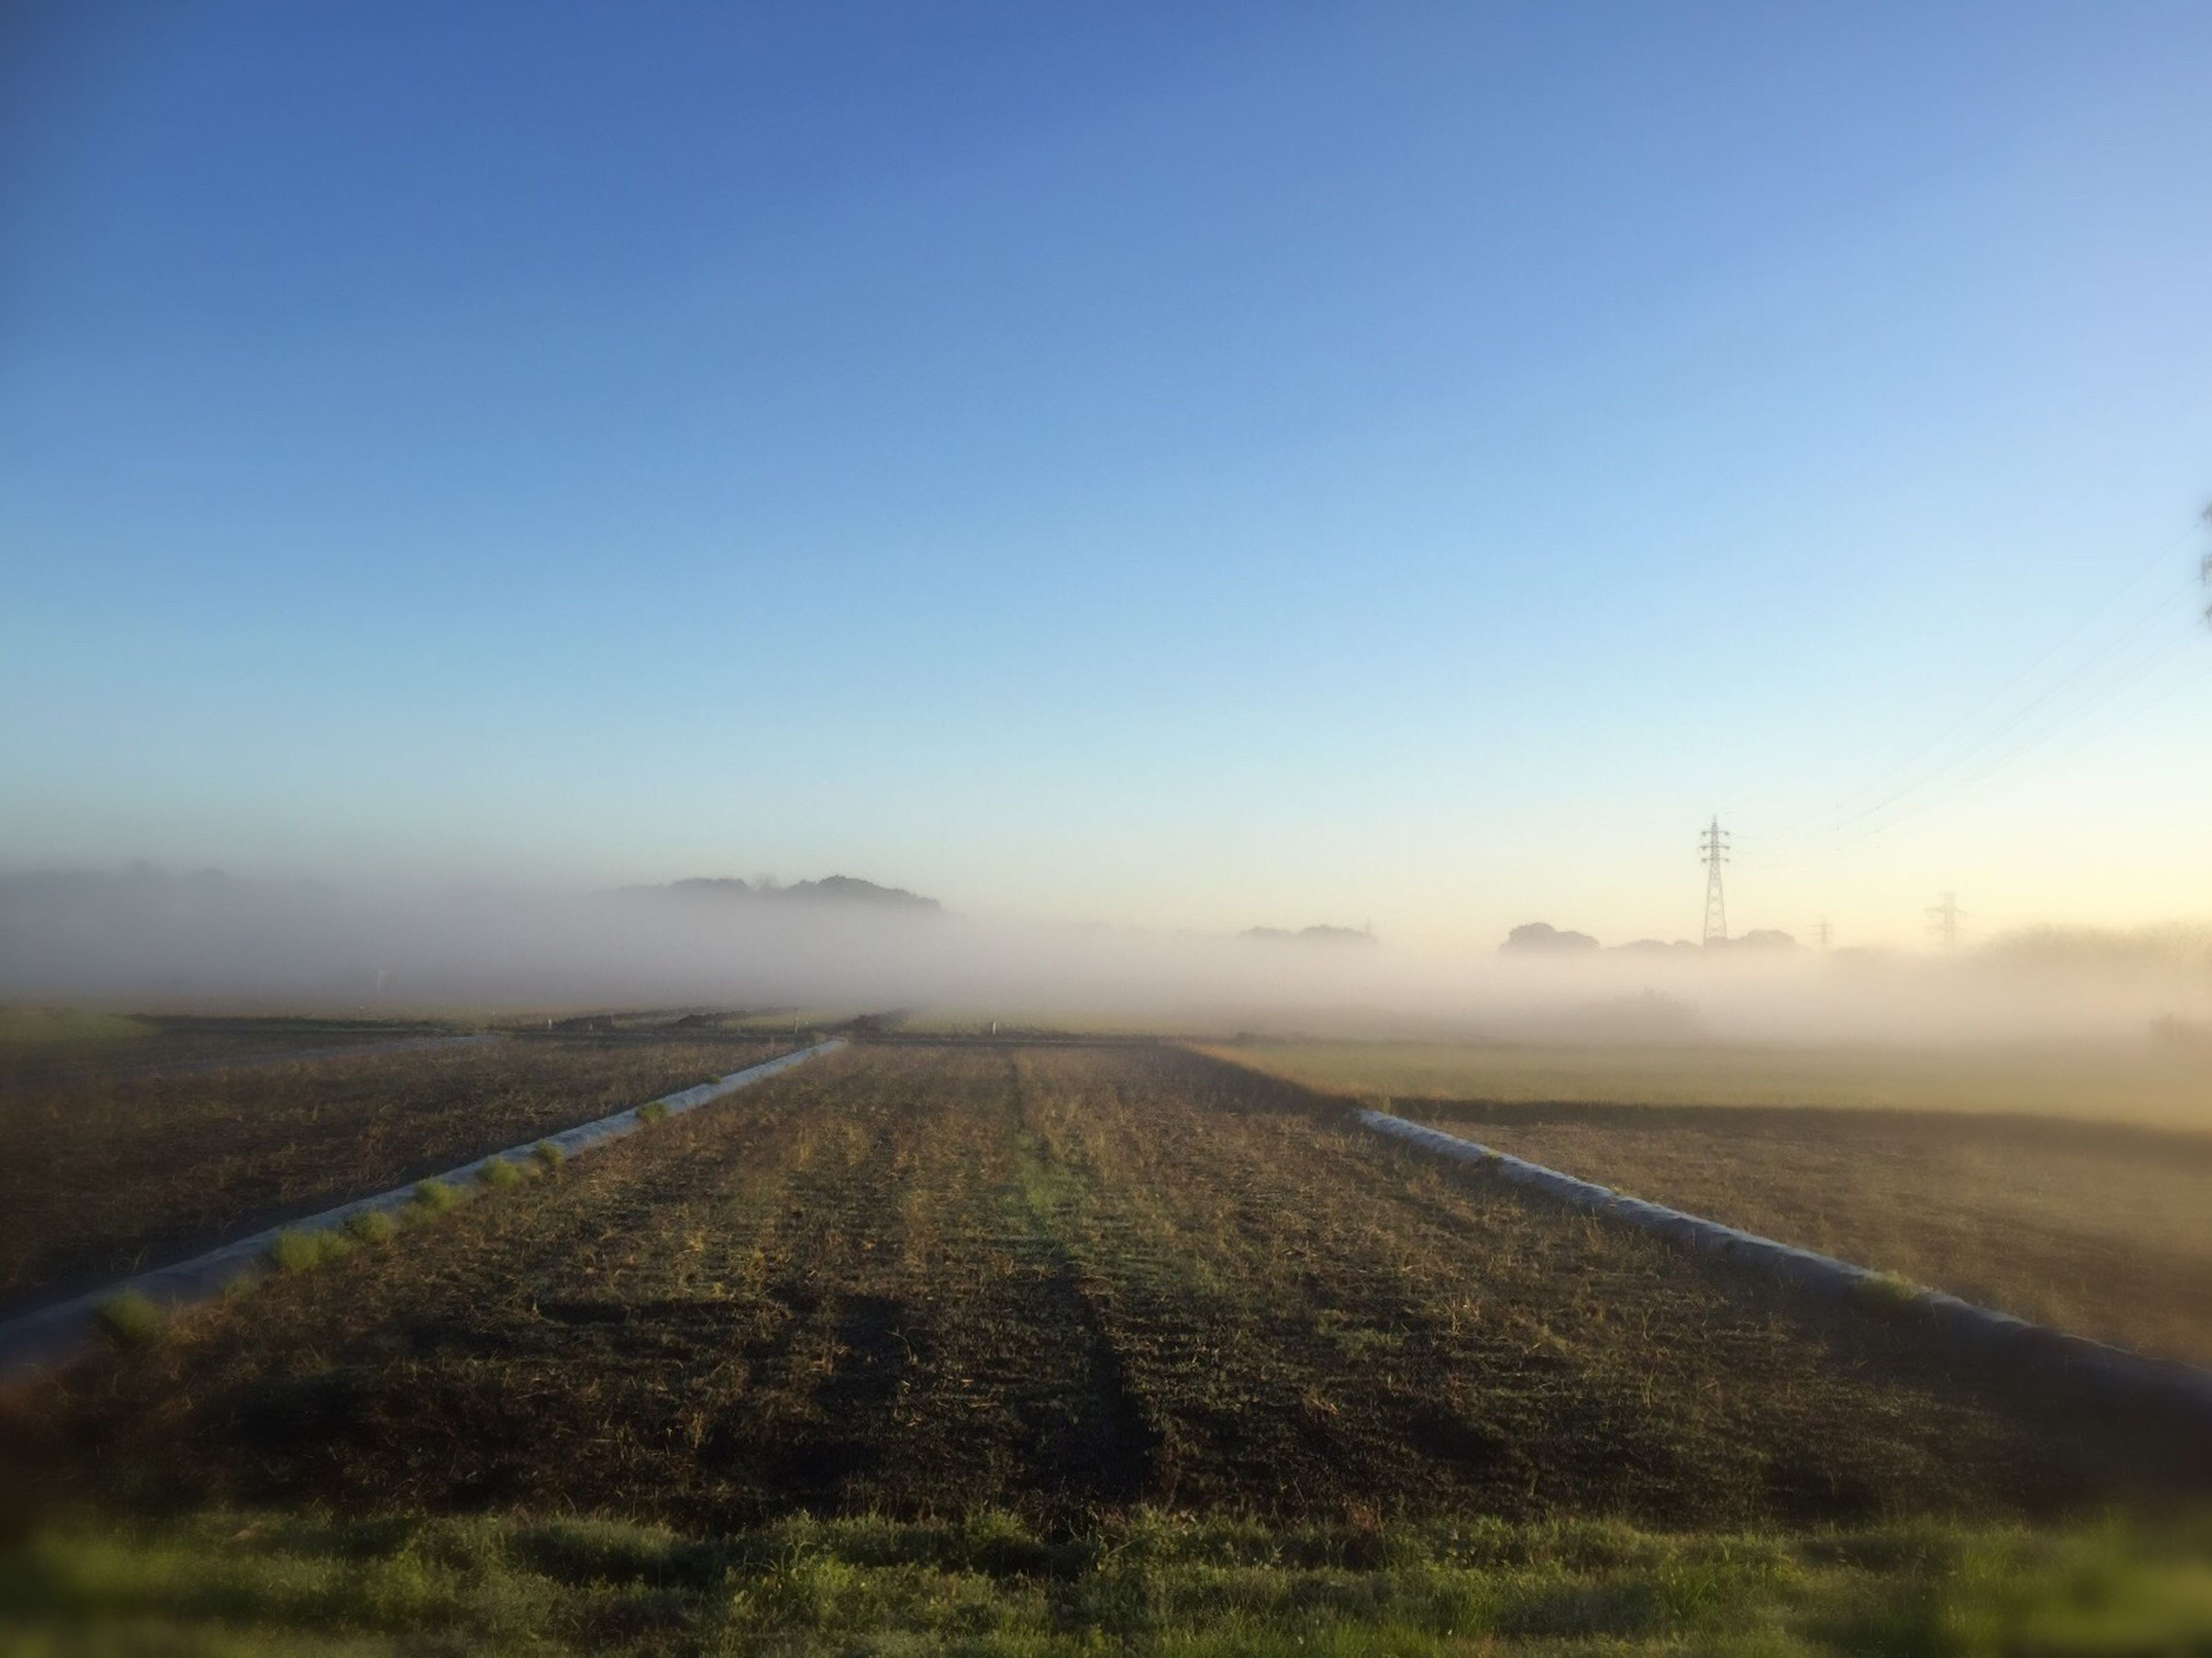 landscape, fog, field, tranquil scene, foggy, tranquility, copy space, road, scenics, nature, transportation, sky, beauty in nature, grass, non-urban scene, country road, outdoors, weather, no people